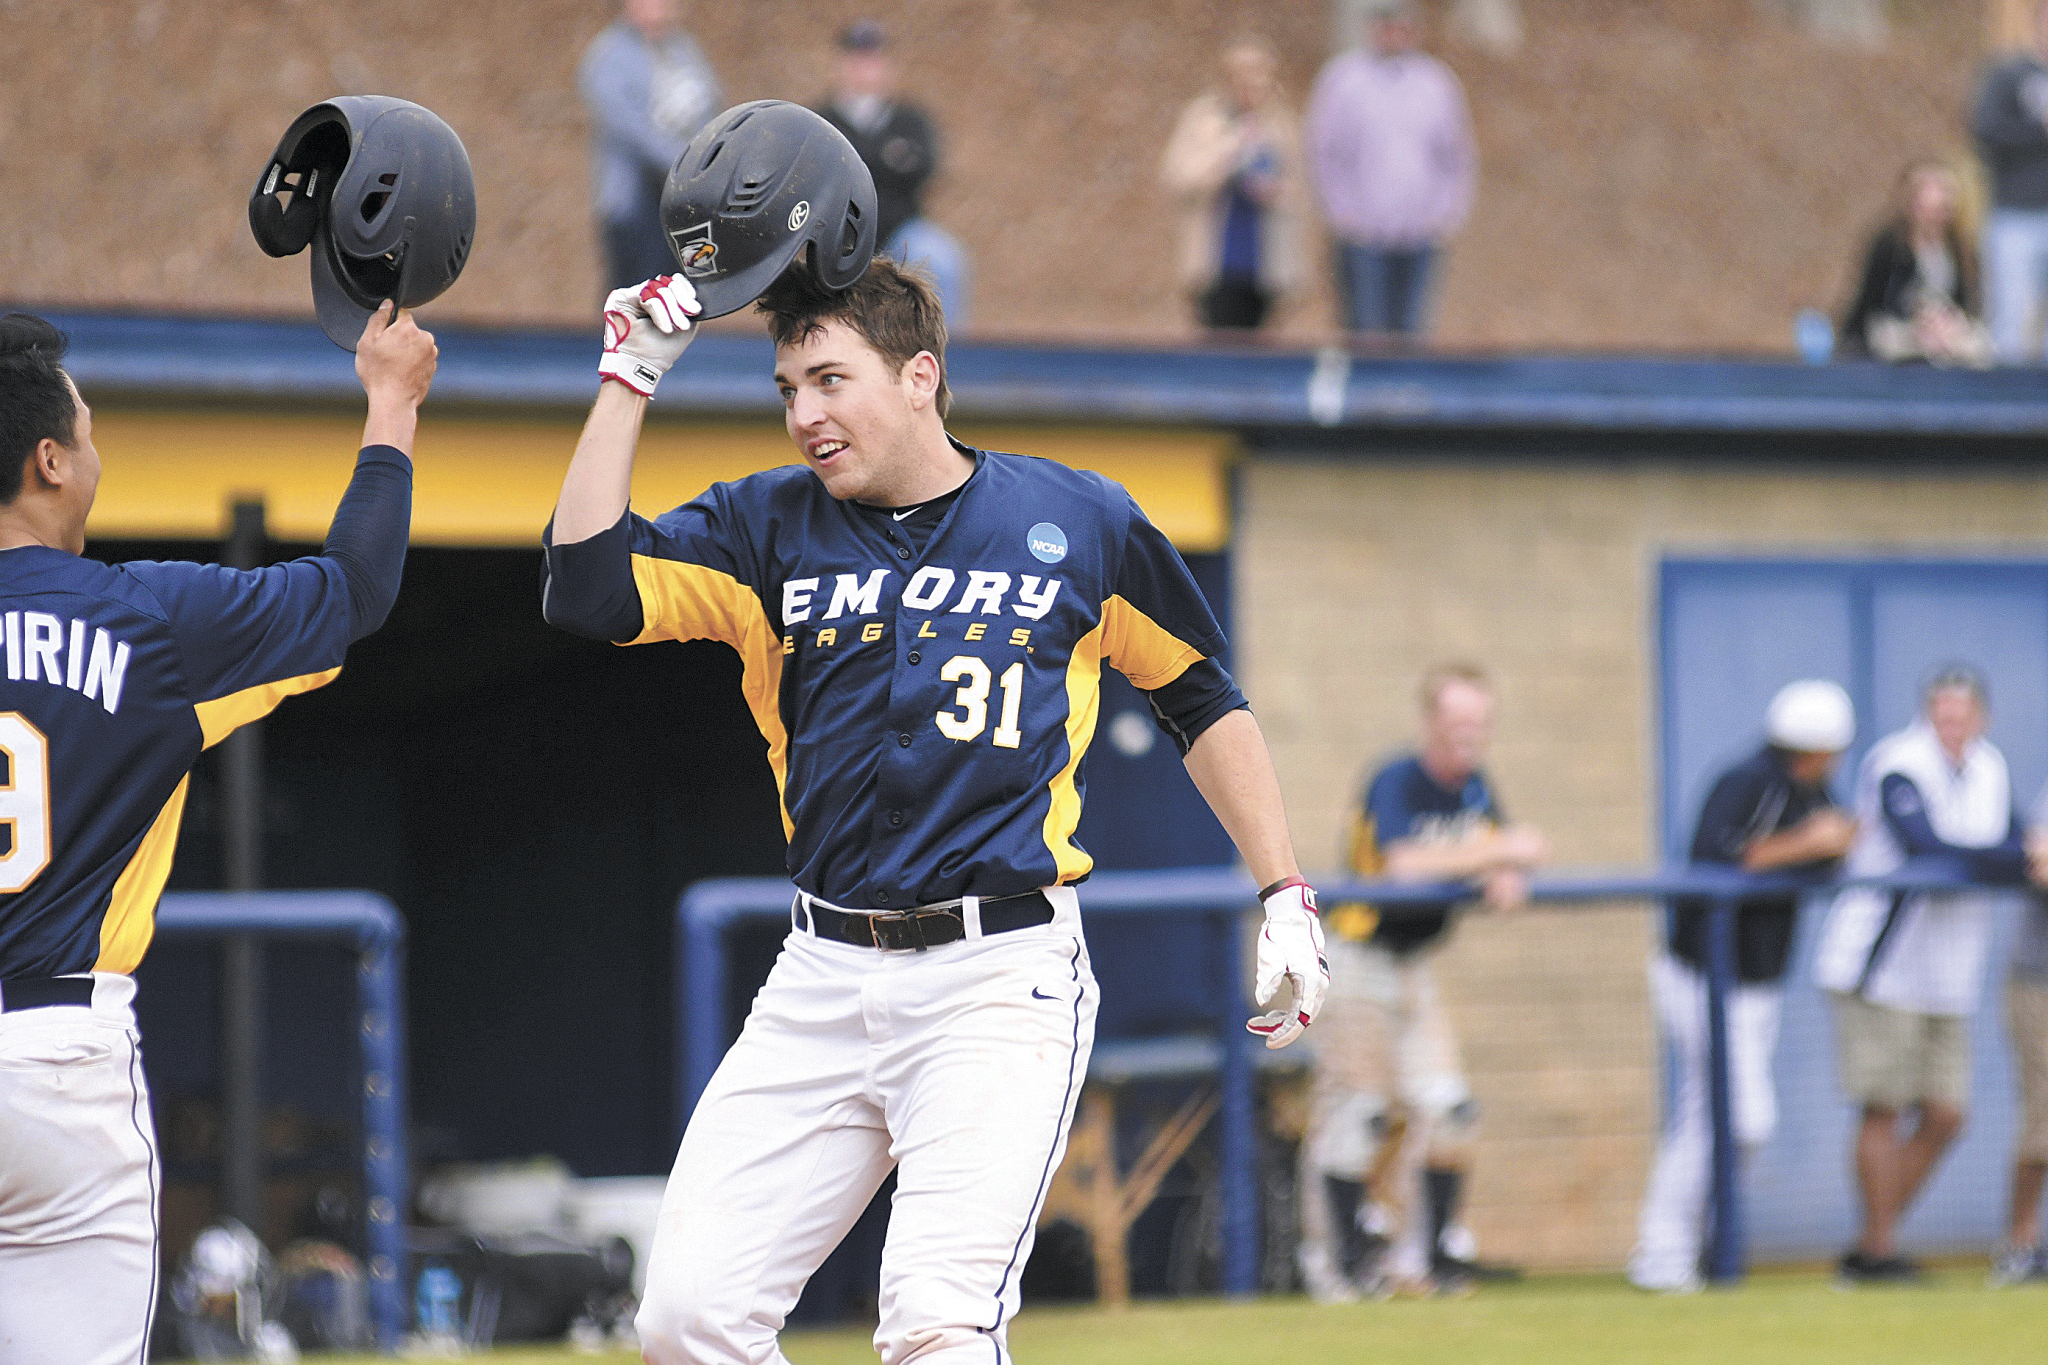 Emory Sports Teams to Hold Official Practices in Spring